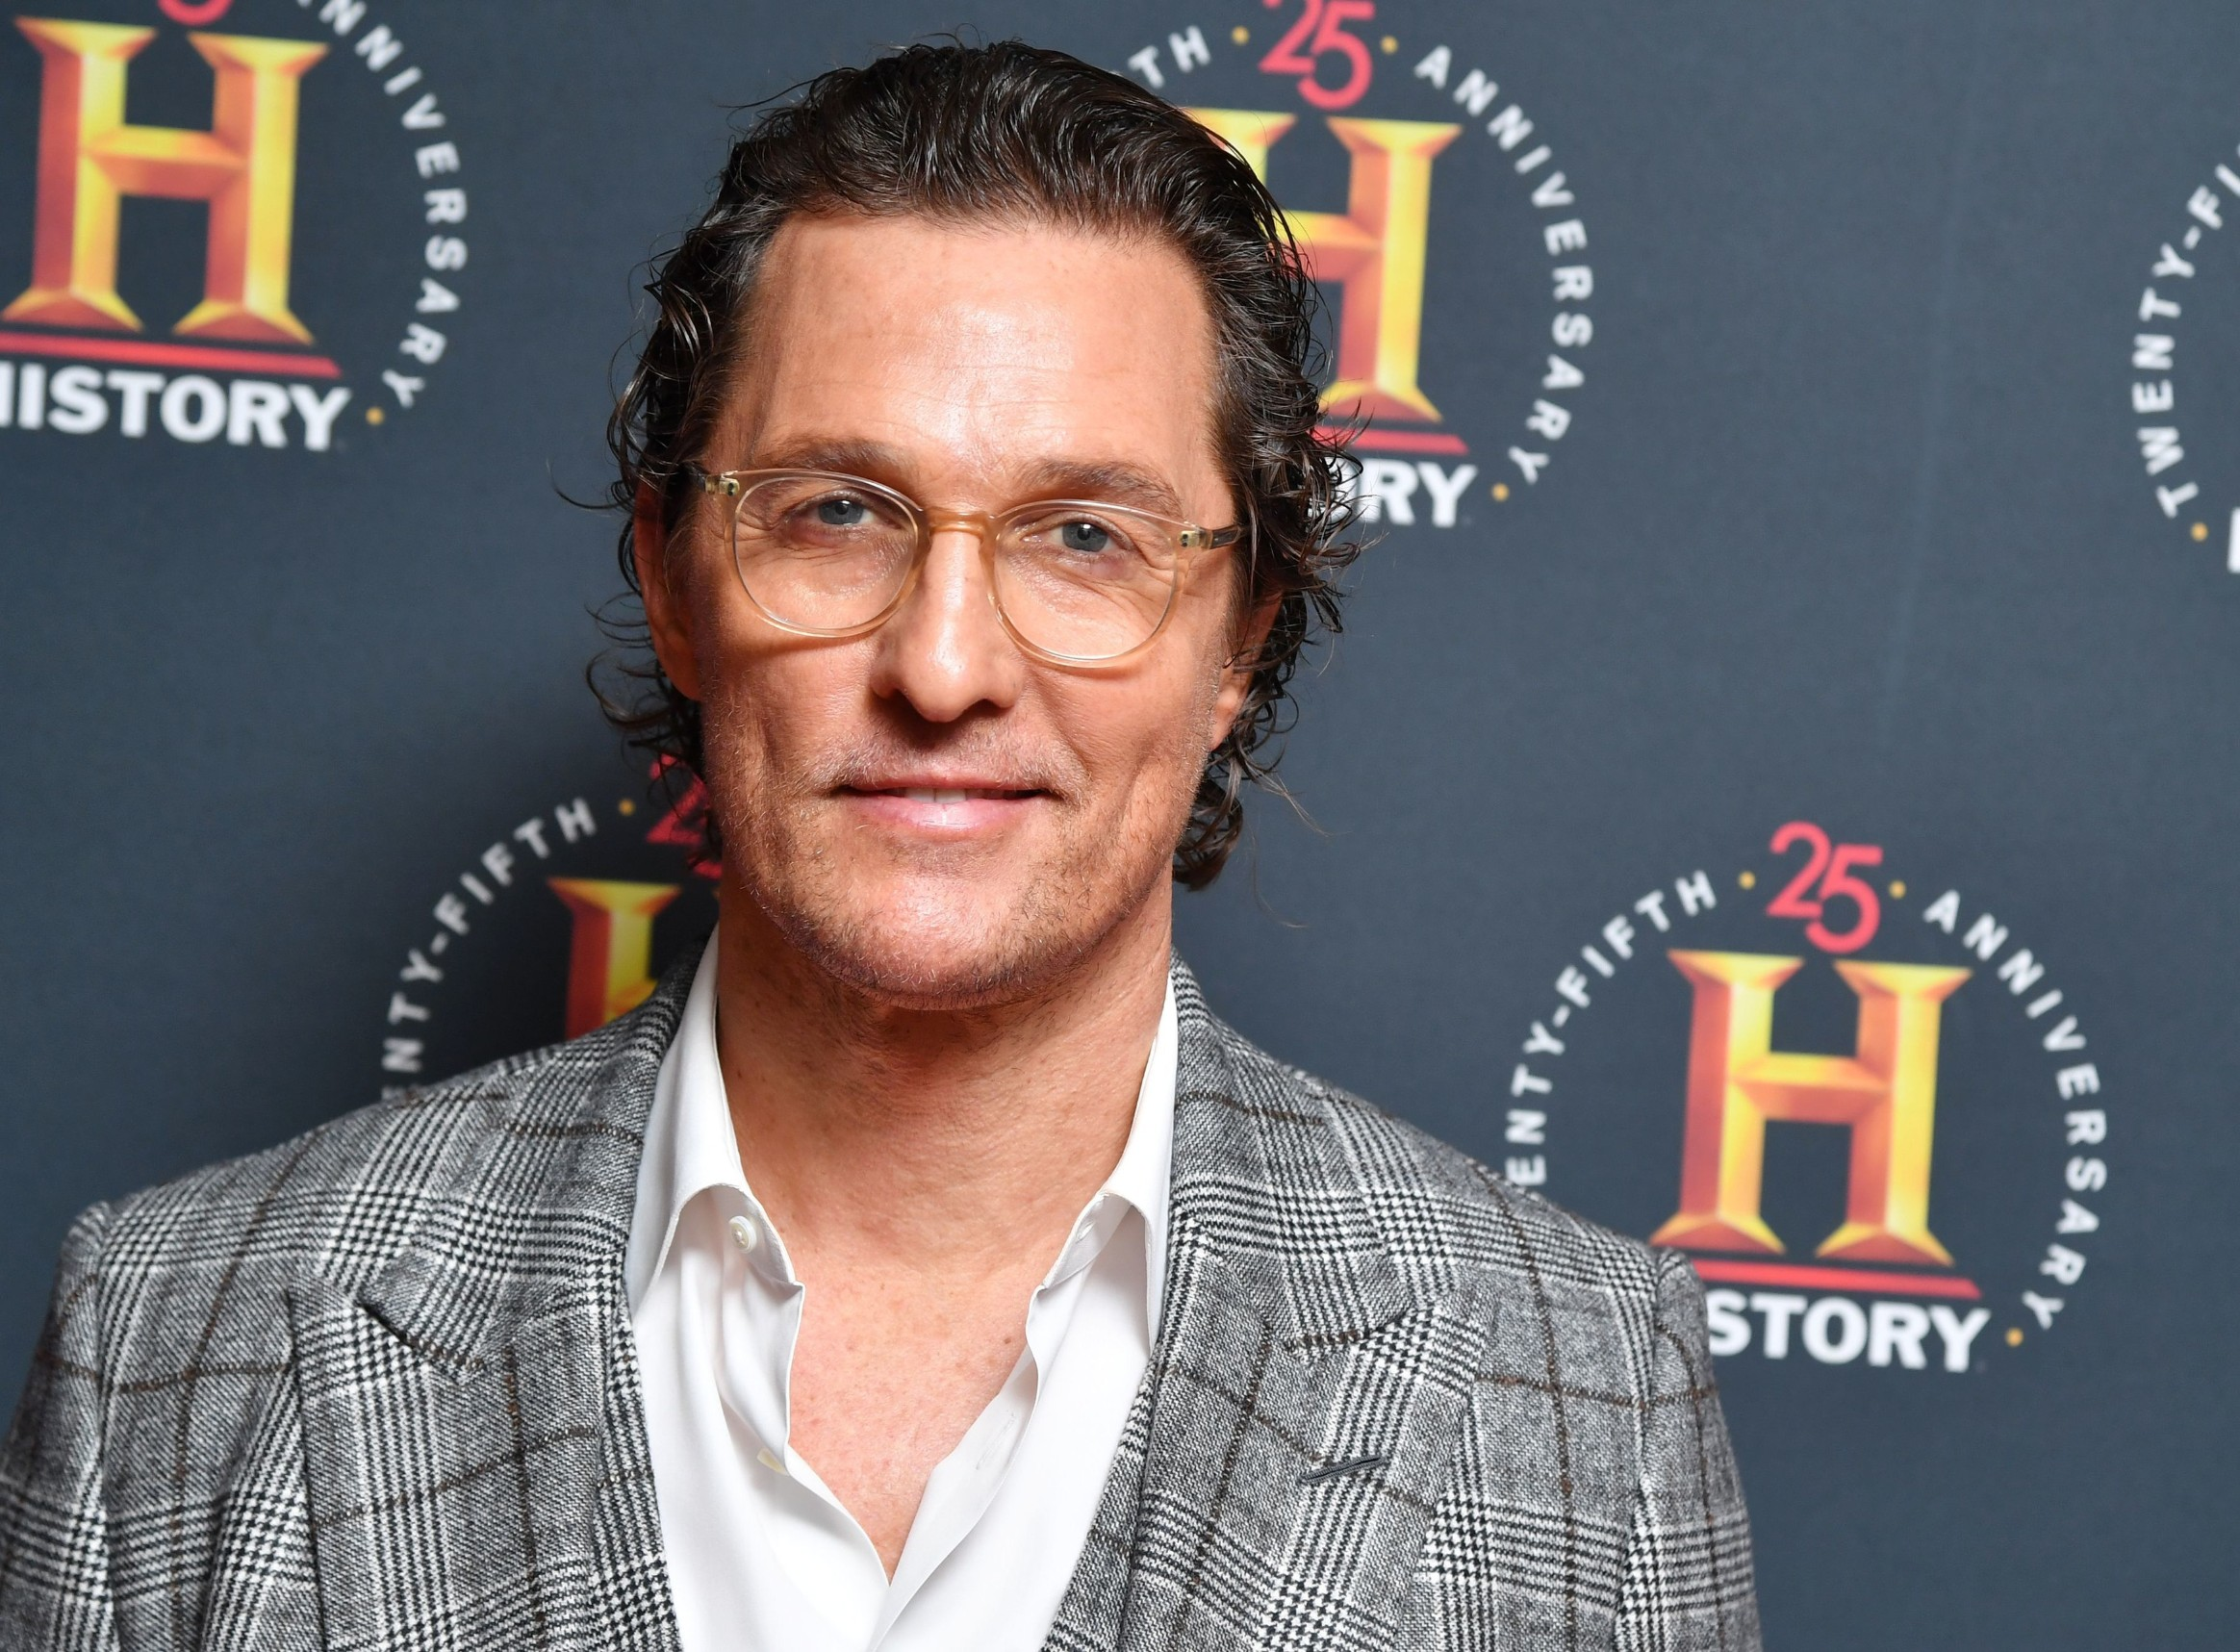 Matthew McConaughey HISTORYTalks Leadership and Legacy event, Arrivals, Carnegie Hall, New York, USA - 29 Feb 2020, Image: 502017506, License: Rights-managed, Restrictions: , Model Release: no, Credit line: Stephen Lovekin/Variety / Shutterstock Editorial / Profimedia